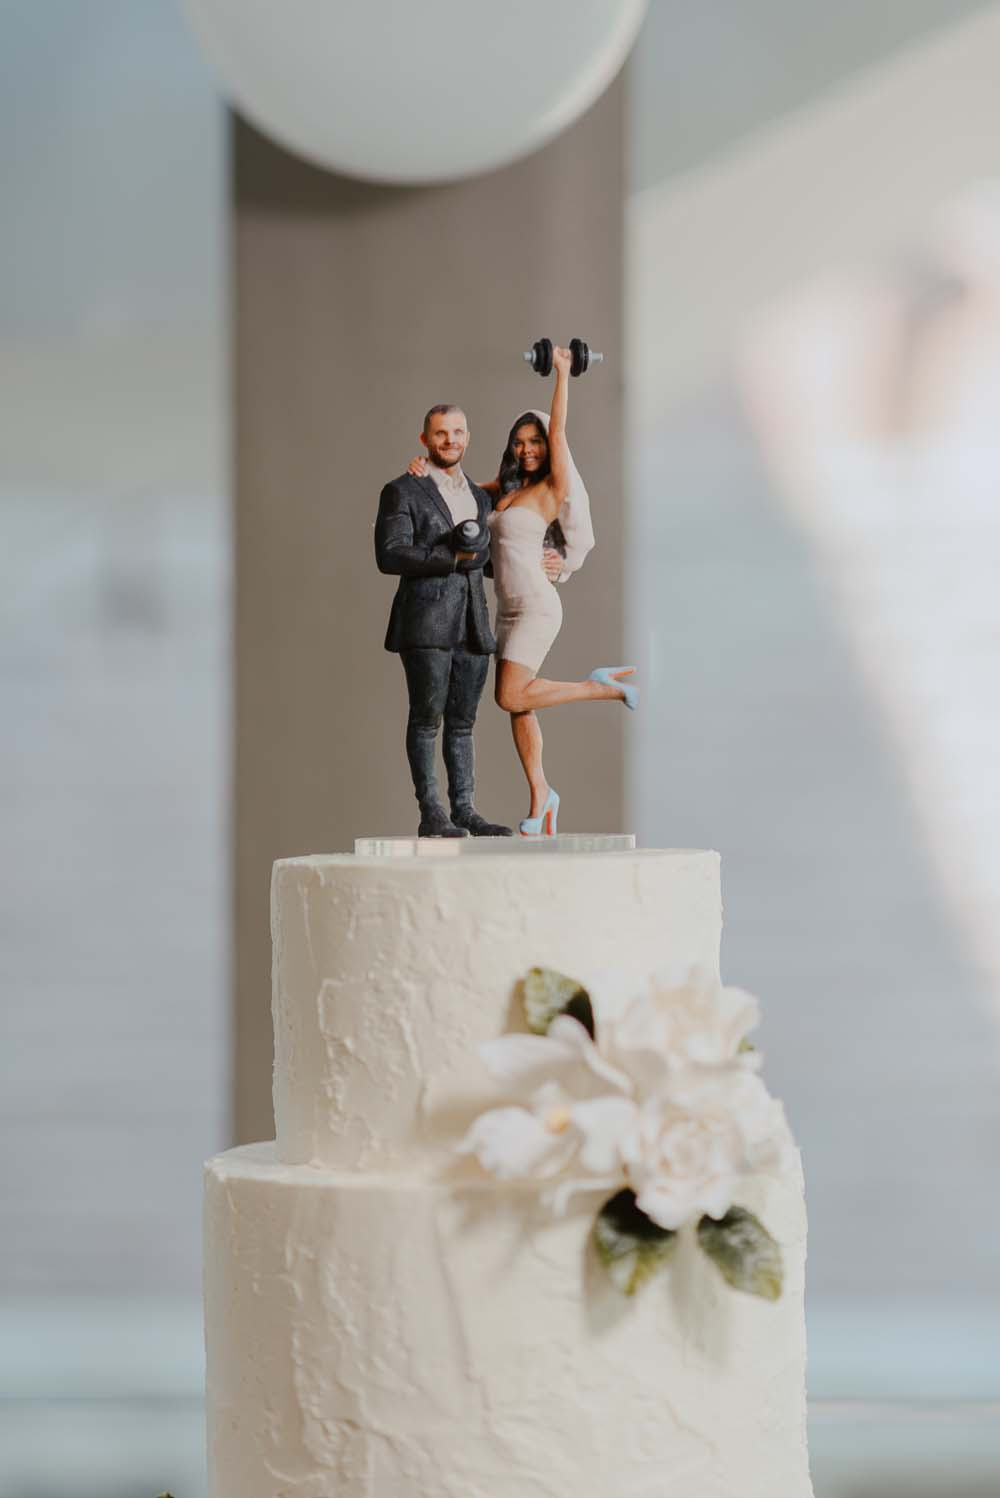 An Opulent Wedding At The Royal Conservatory Of Music - cake topper